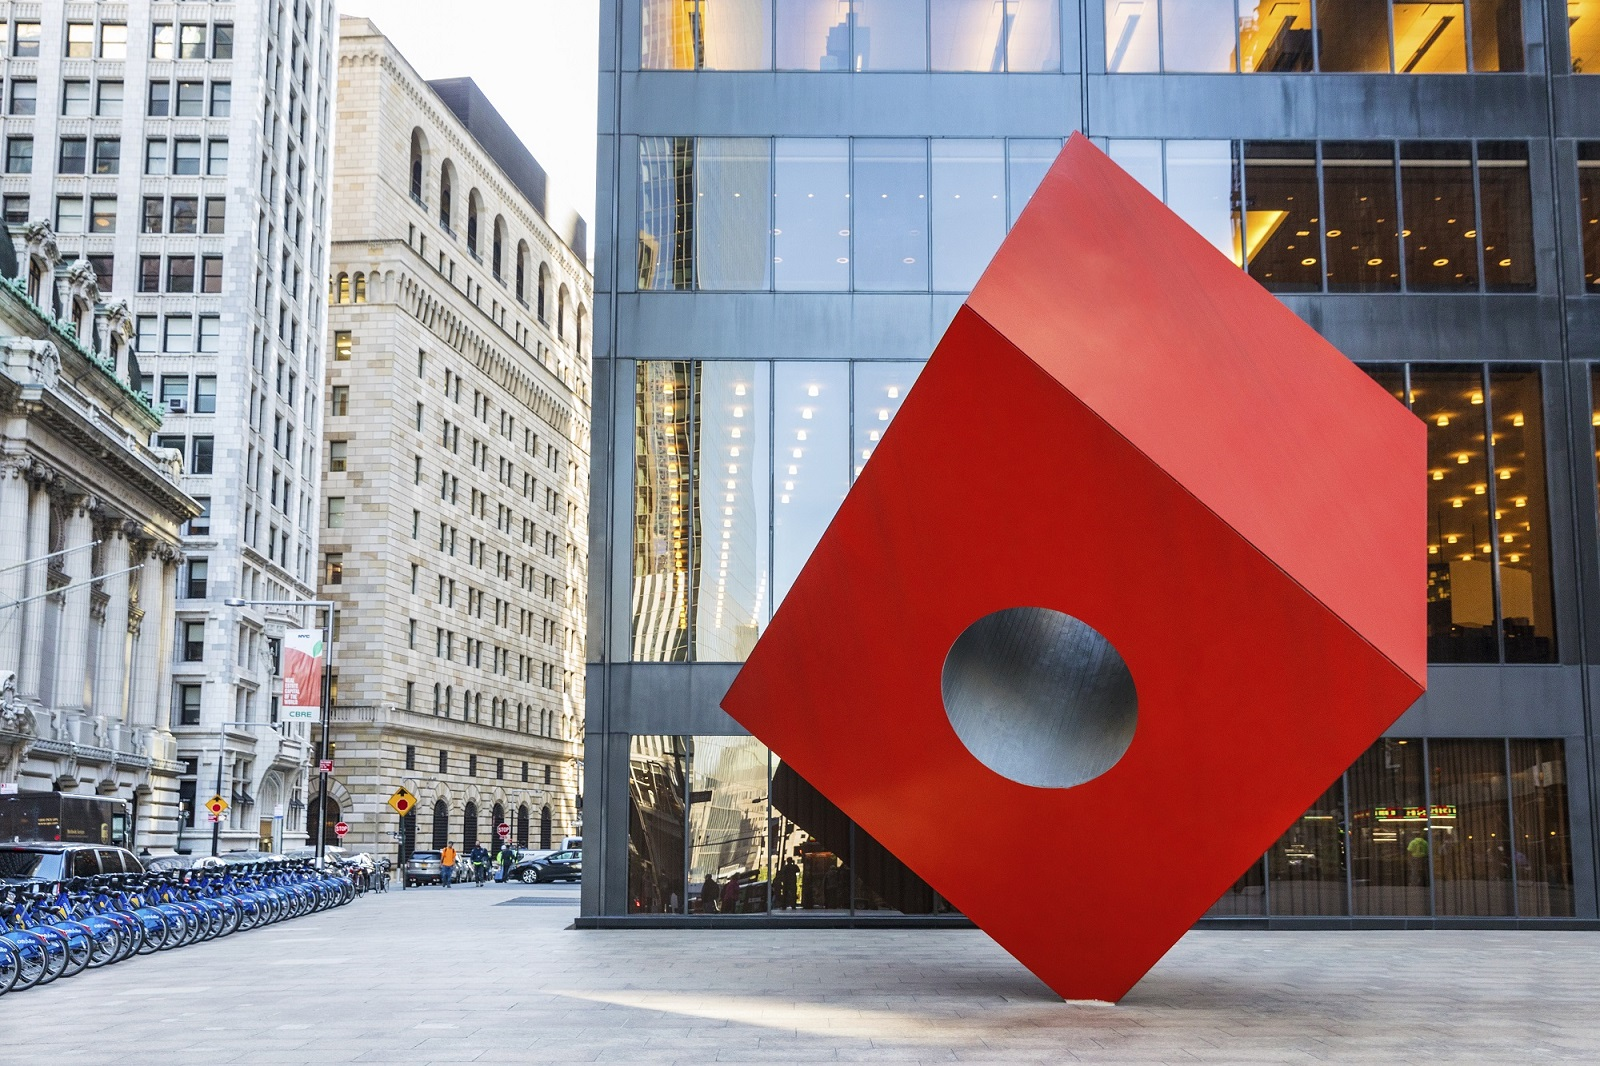 large red cube sculpture -19 Dutch Apts lower Manhattan neighborhood